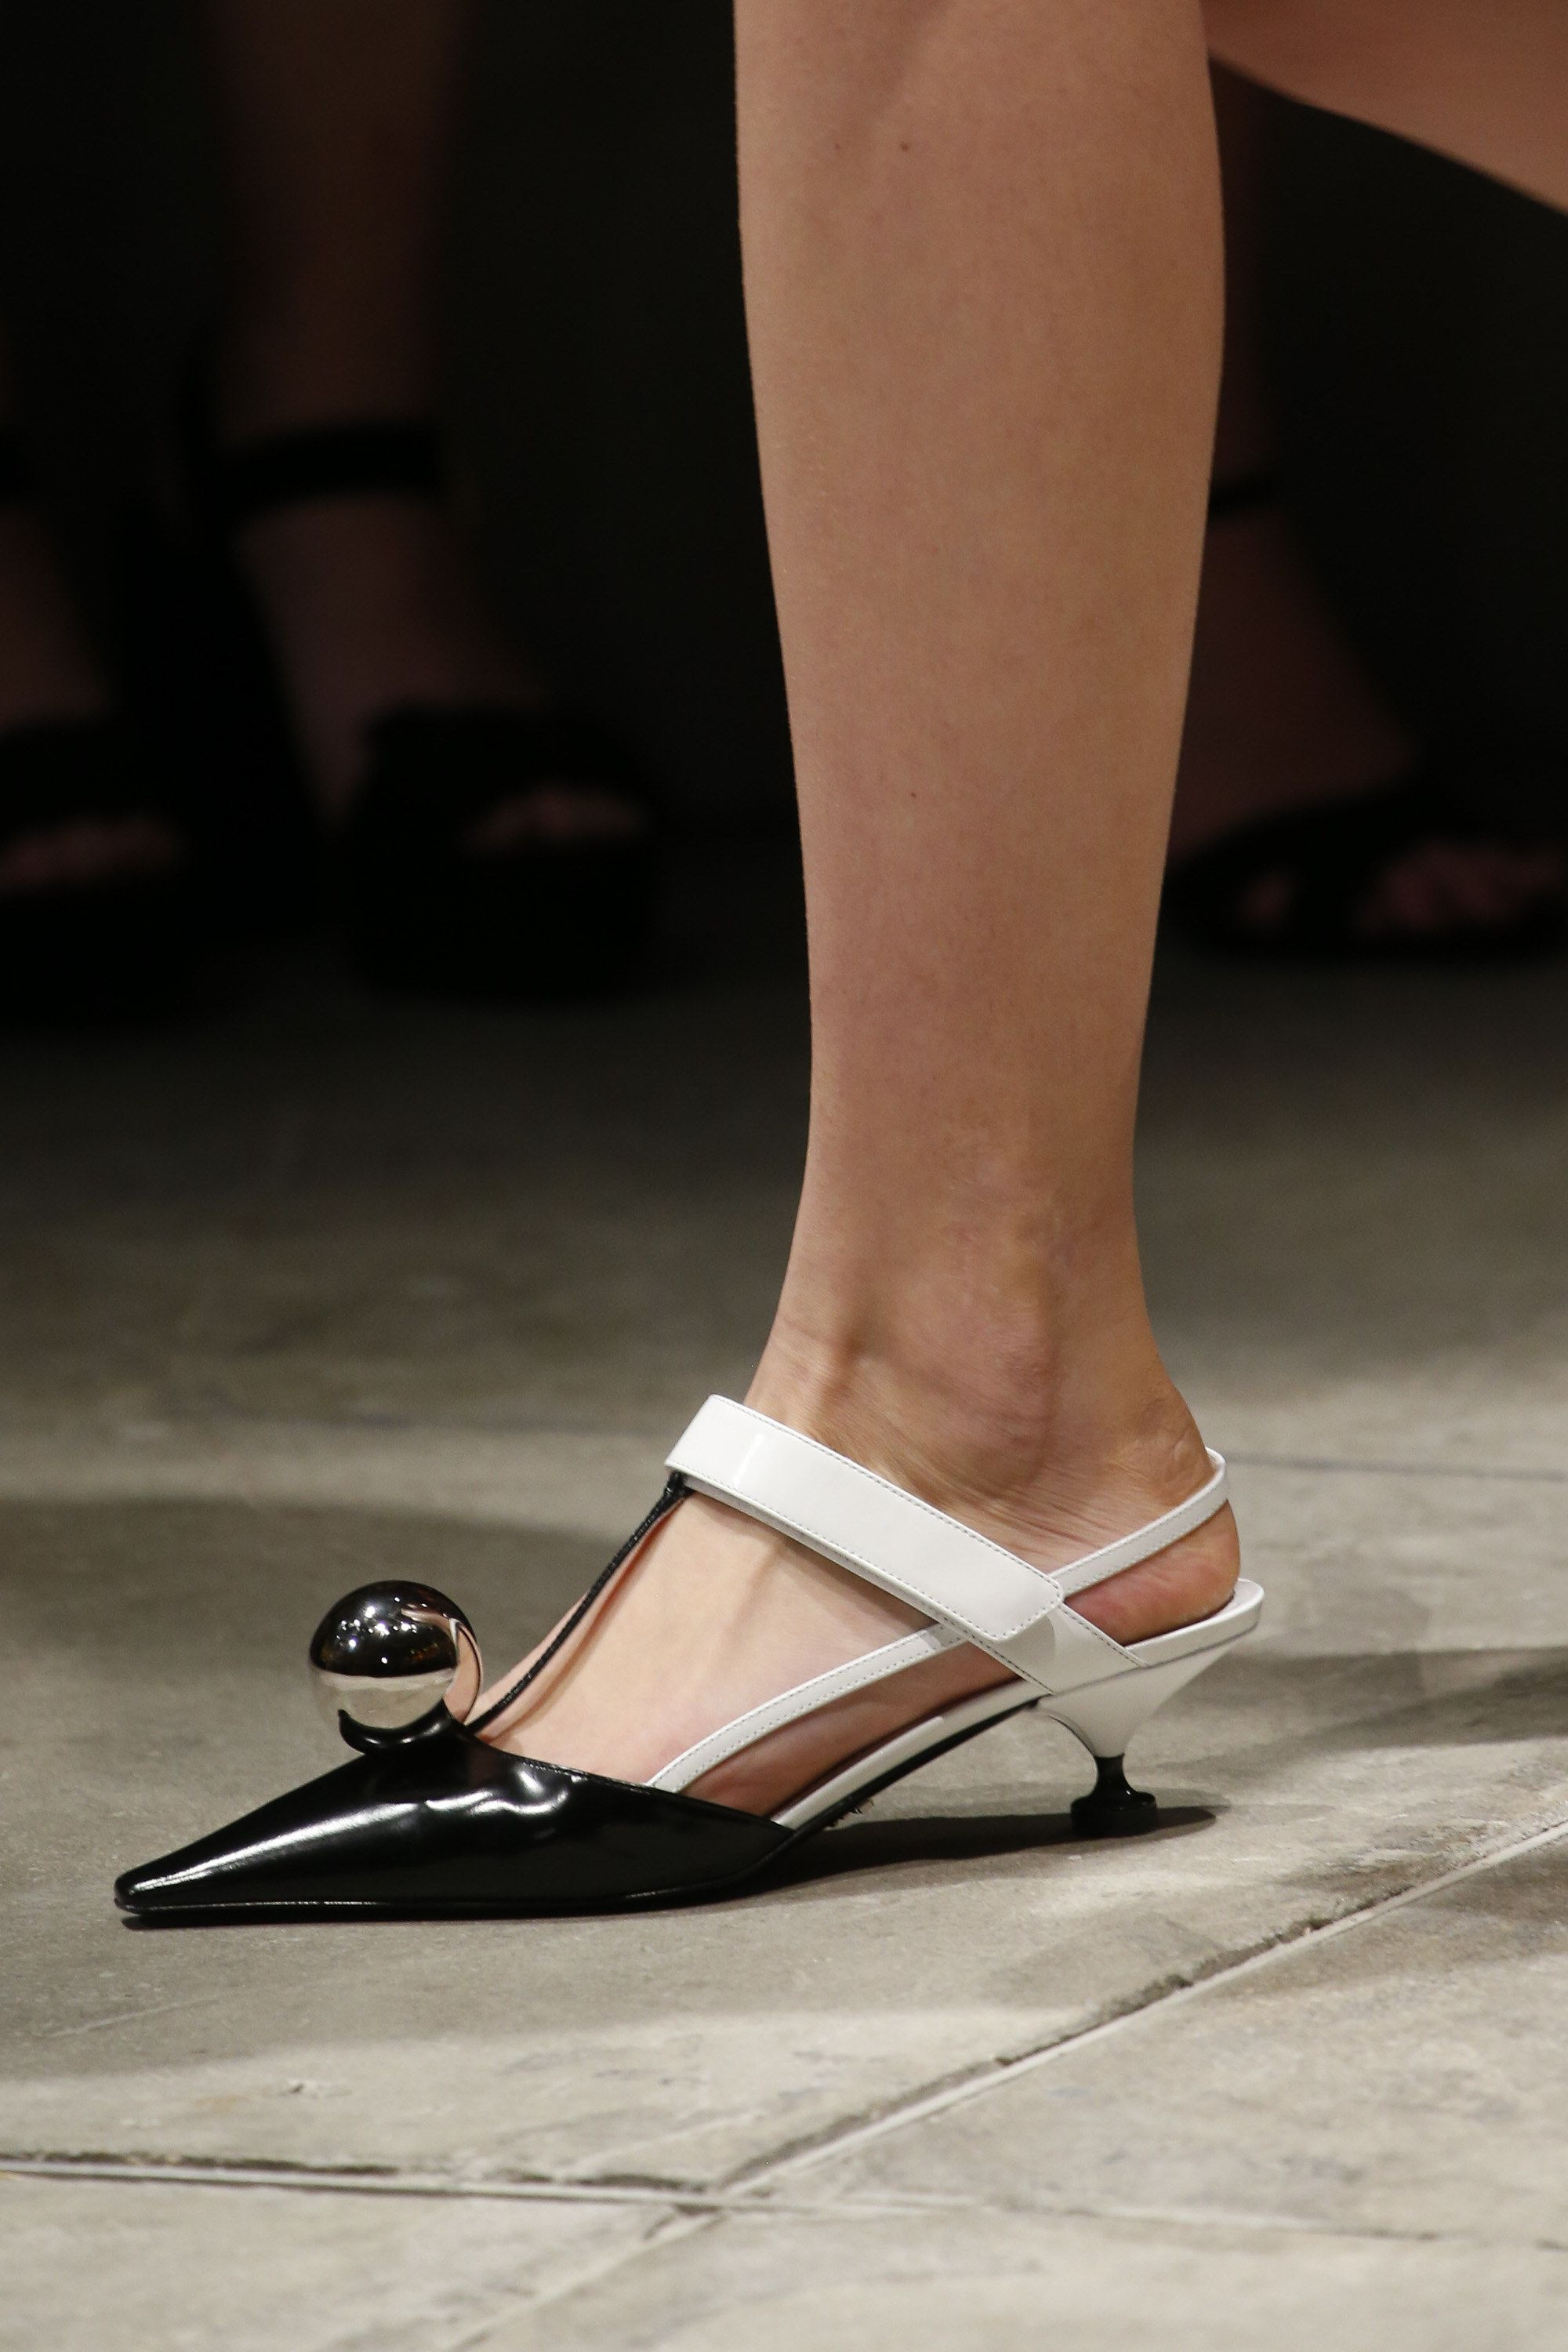 prada spring 2016 ready to wear fashion show details shoes pinterest prada spring and. Black Bedroom Furniture Sets. Home Design Ideas